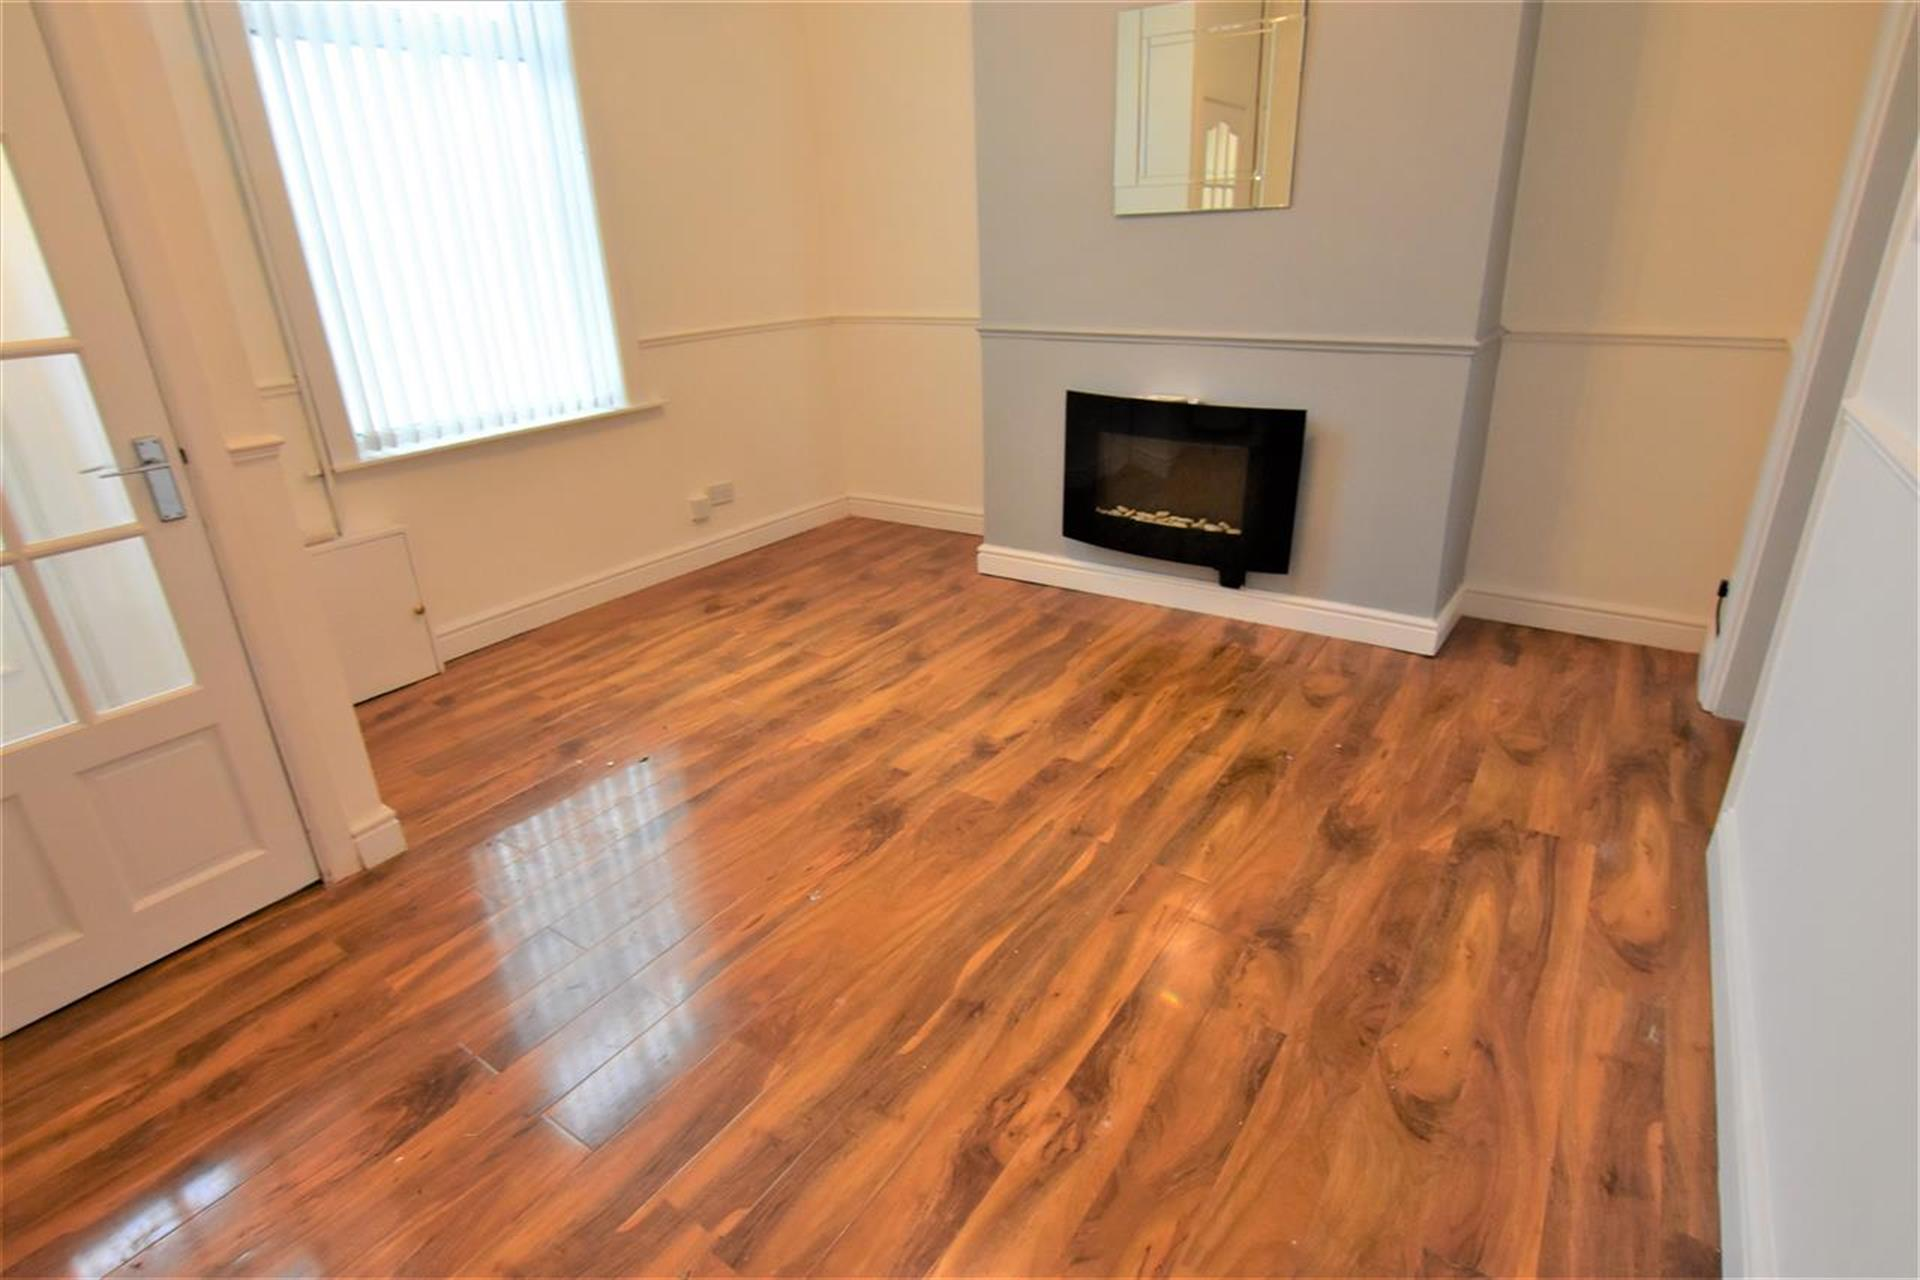 2 Bedroom Terraced House To Rent - Front reception room